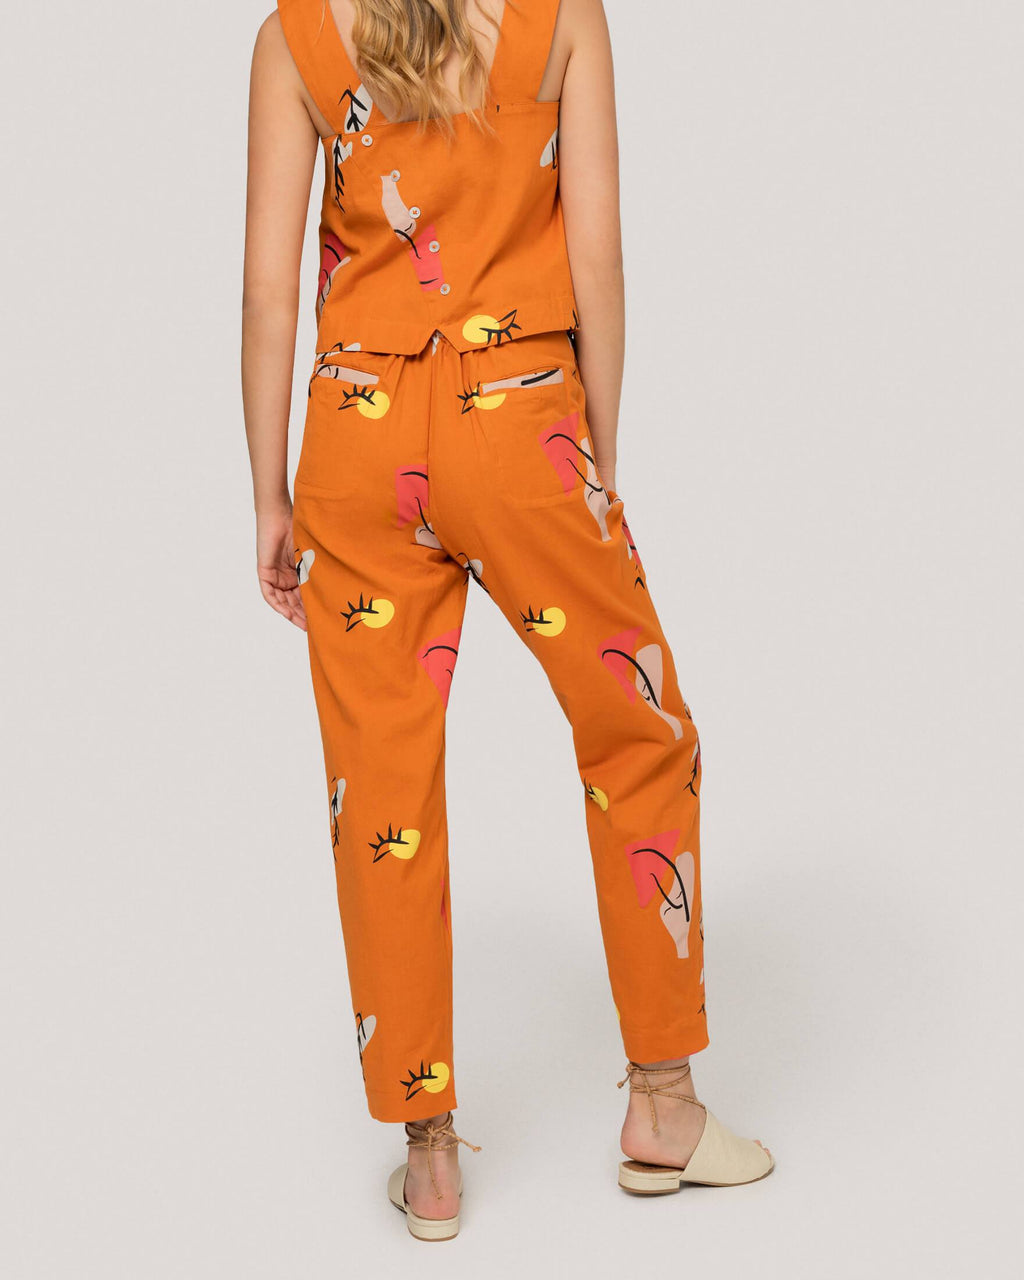 variant_1 | EN Orange Pants Print Summer Women Suite13 | DE Orangene Sommerhose Hose Damen Suite13